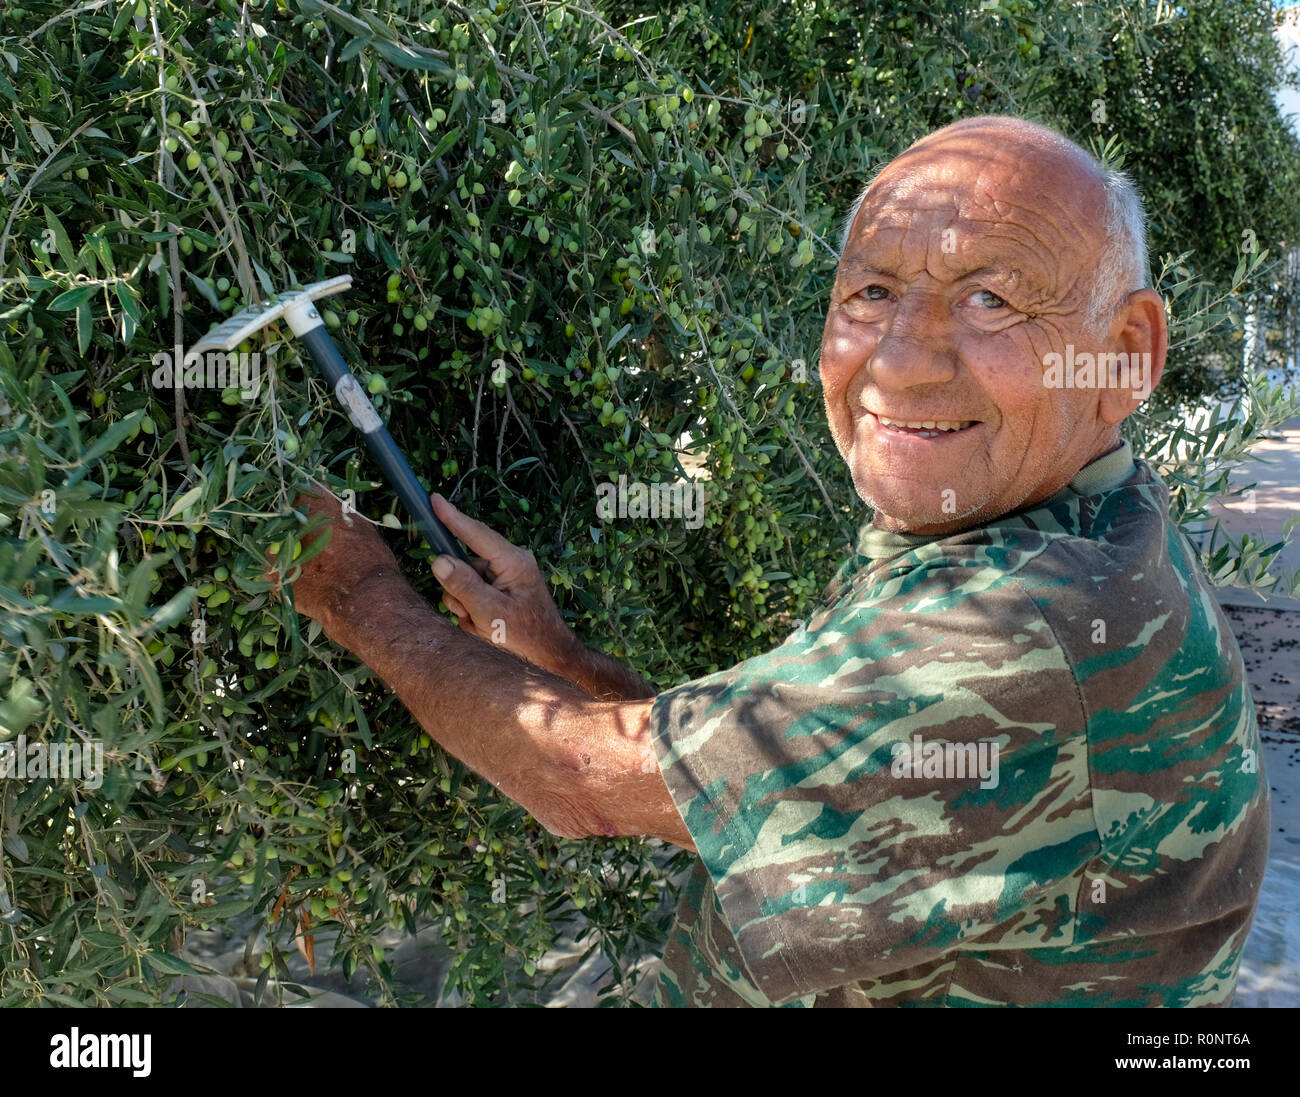 Man collecting olives in Paphos, Cyprus. - Stock Image